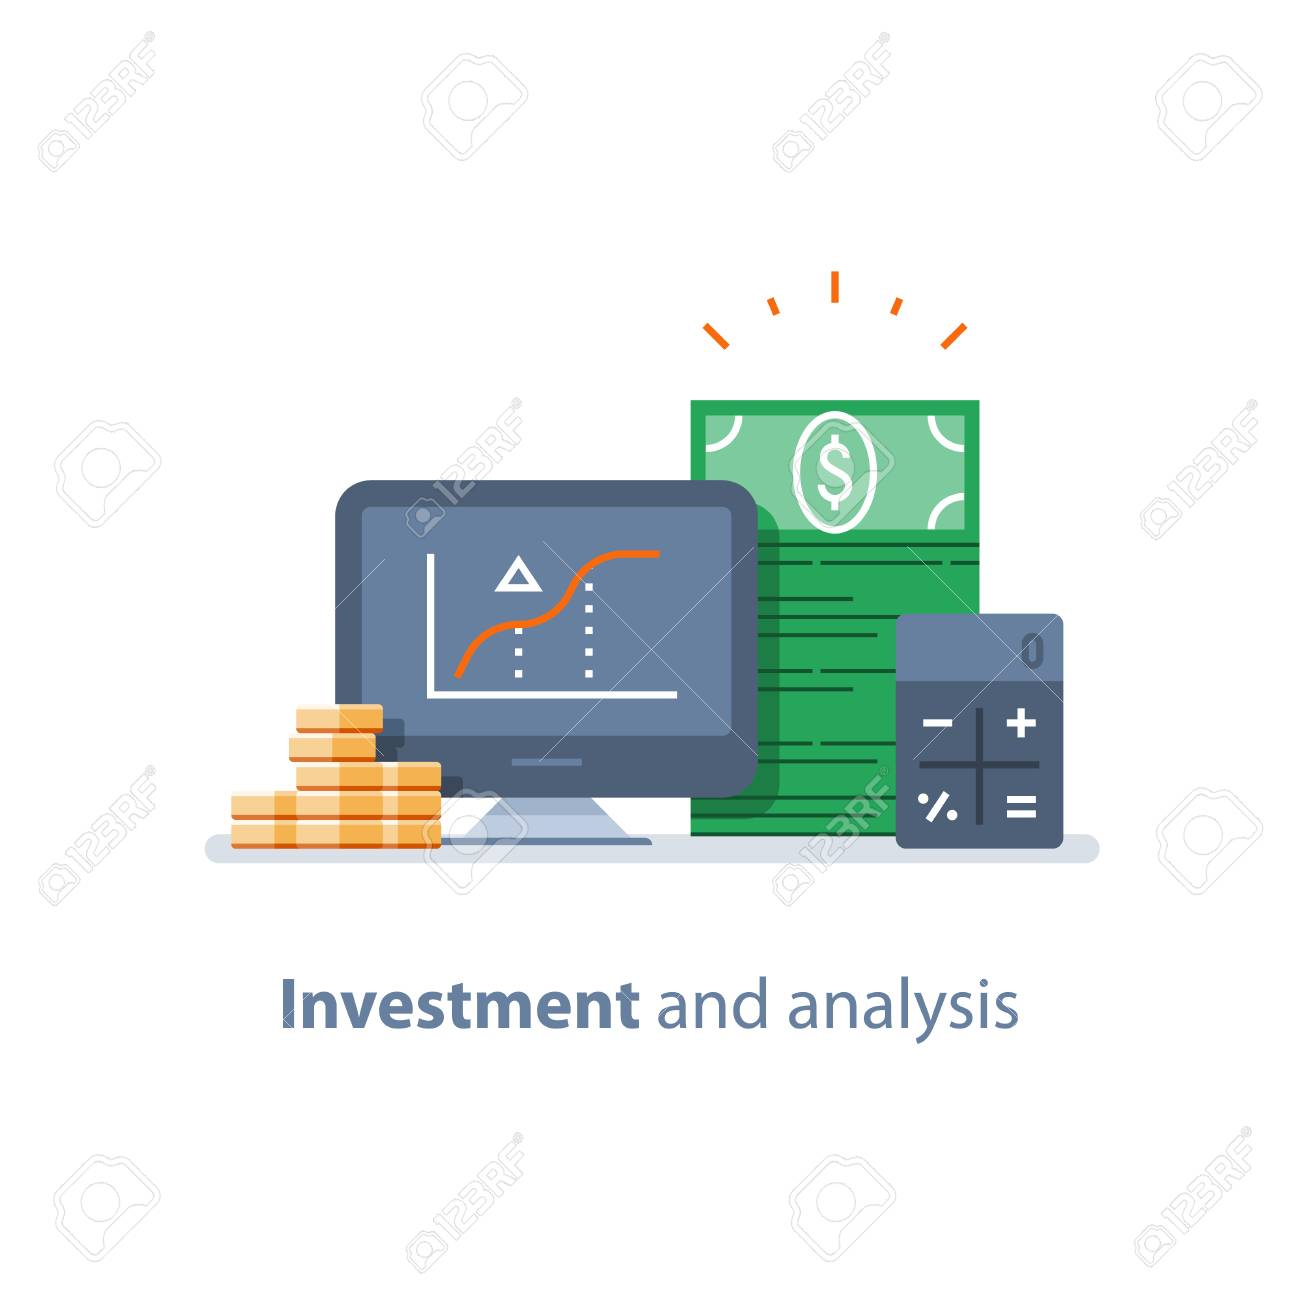 Investment strategy, financial analysis, hedge fund, venture business, mutual fund, trust management, interest rate, capital growth, data review on desktop, stock market and exchange, accountancy icon - 94356679